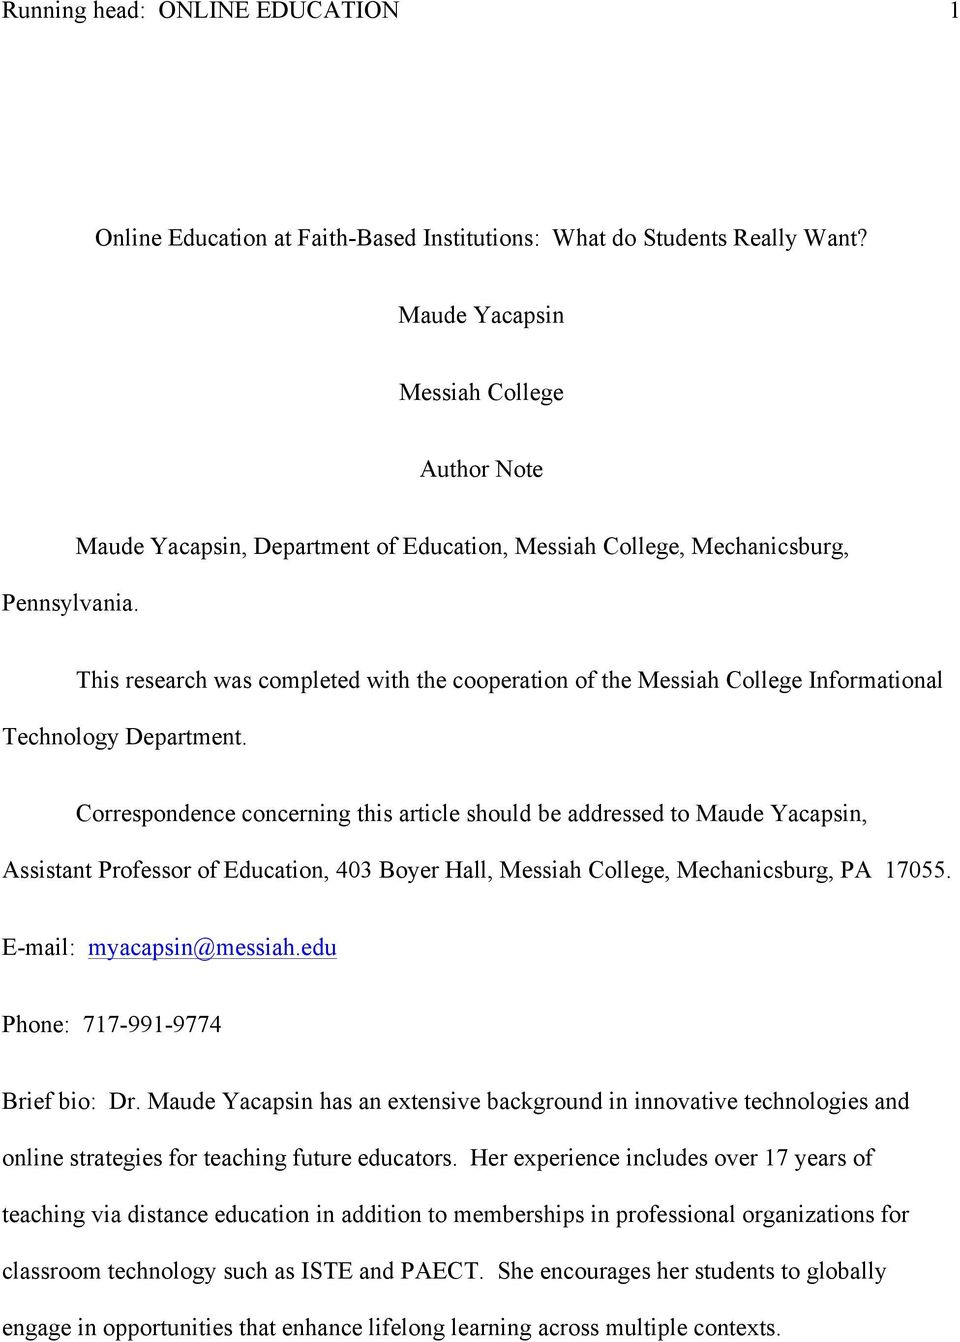 Correspondence concerning this article should be addressed to Maude Yacapsin, Assistant Professor of Education, 403 Boyer Hall, Messiah College, Mechanicsburg, PA 17055. E-mail: myacapsin@messiah.